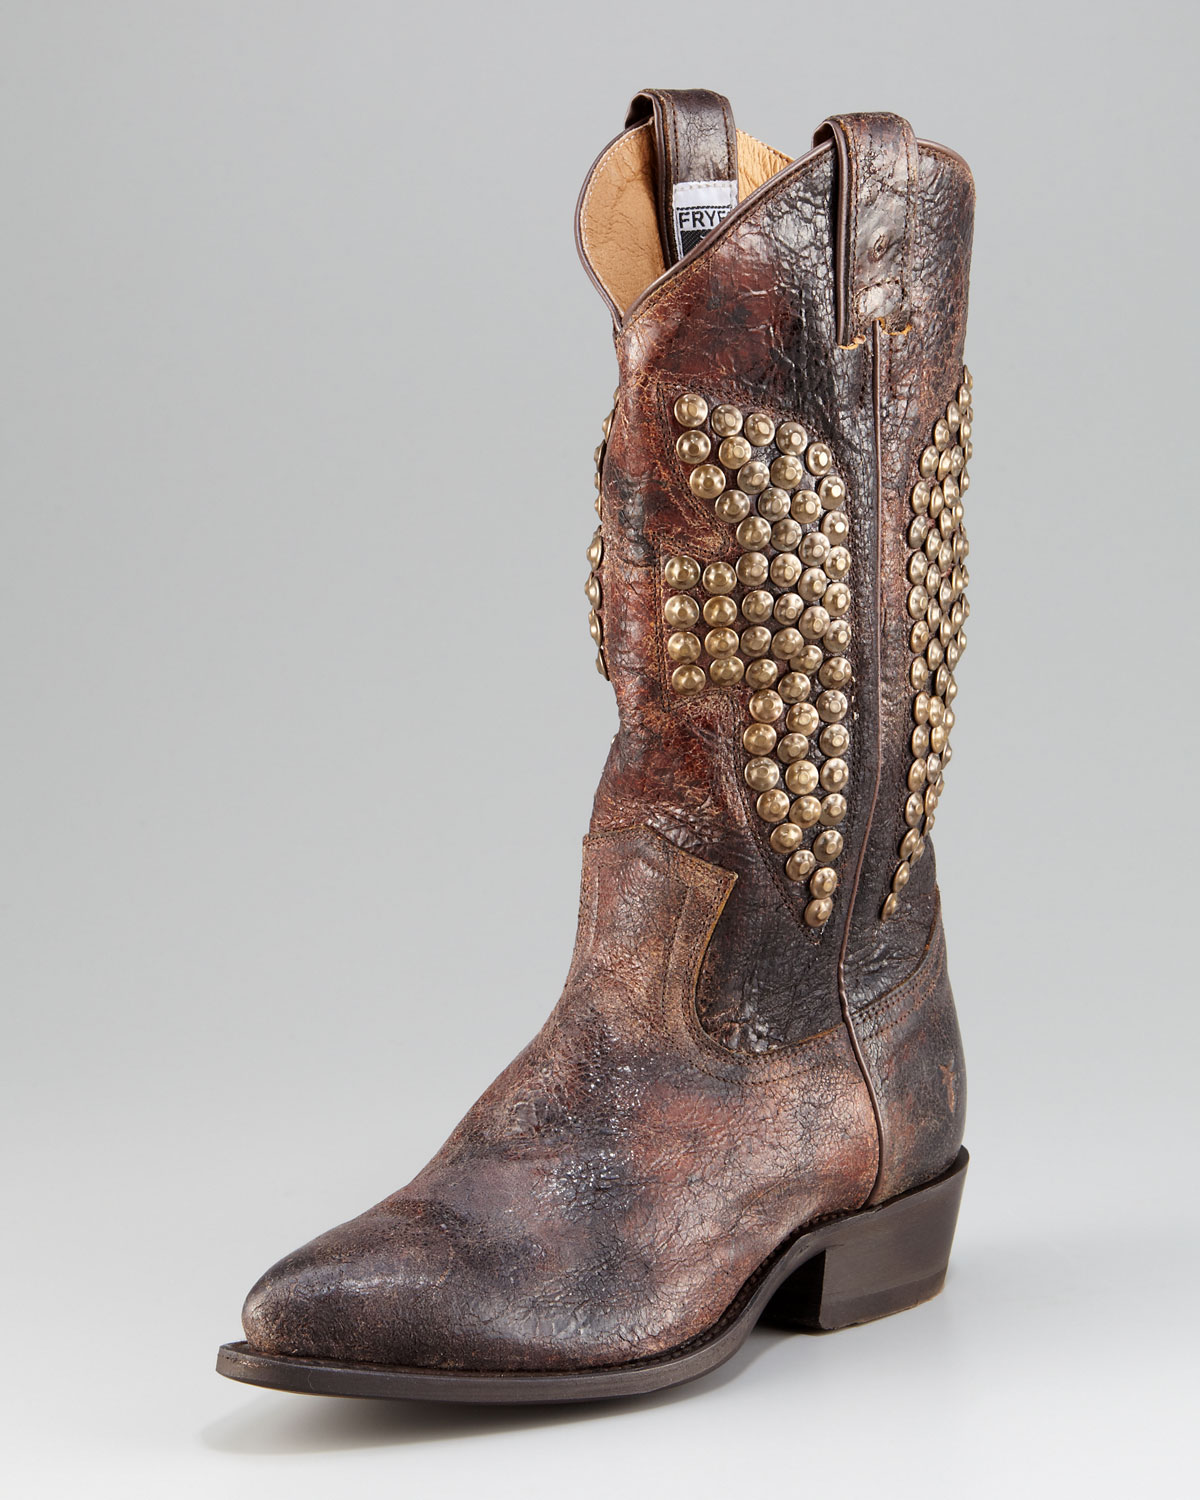 9f0f8fe3692 Lyst - Frye Billy Studded Cowboy Boot in Brown